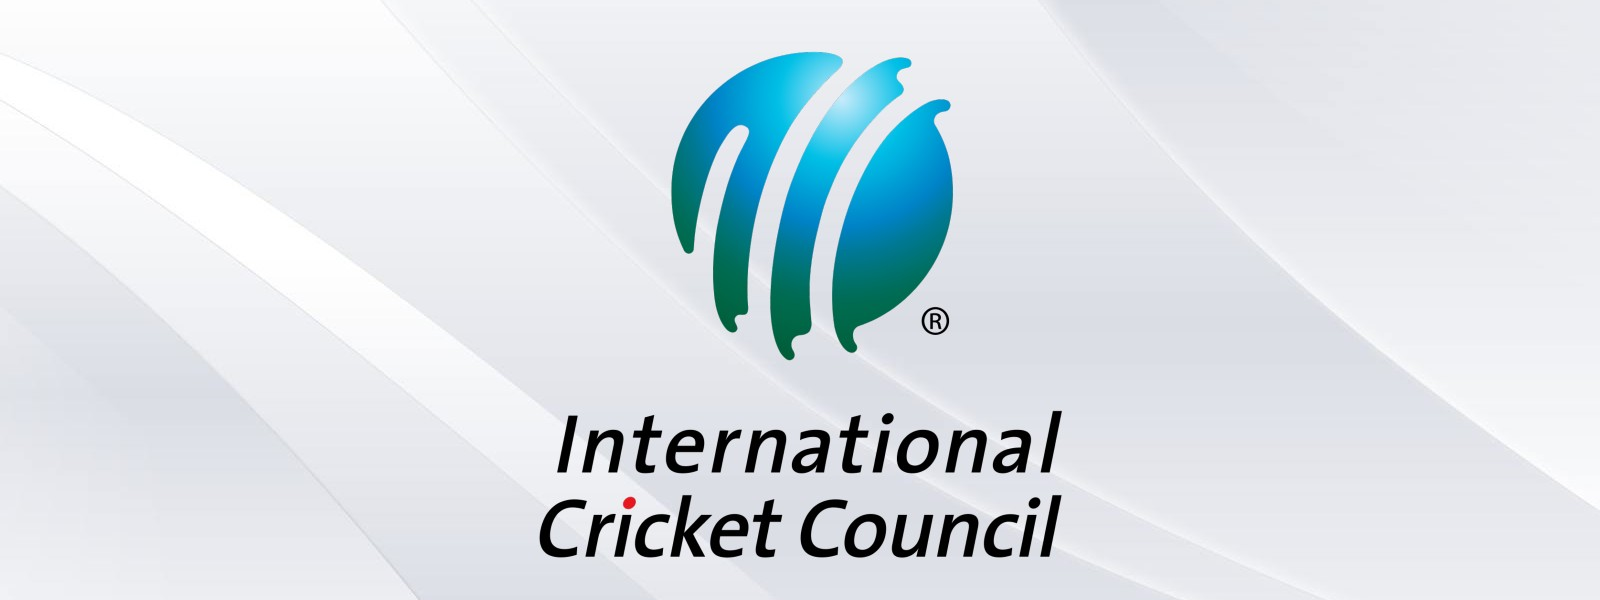 ICC says it did not sanction loan for Homagama stadium